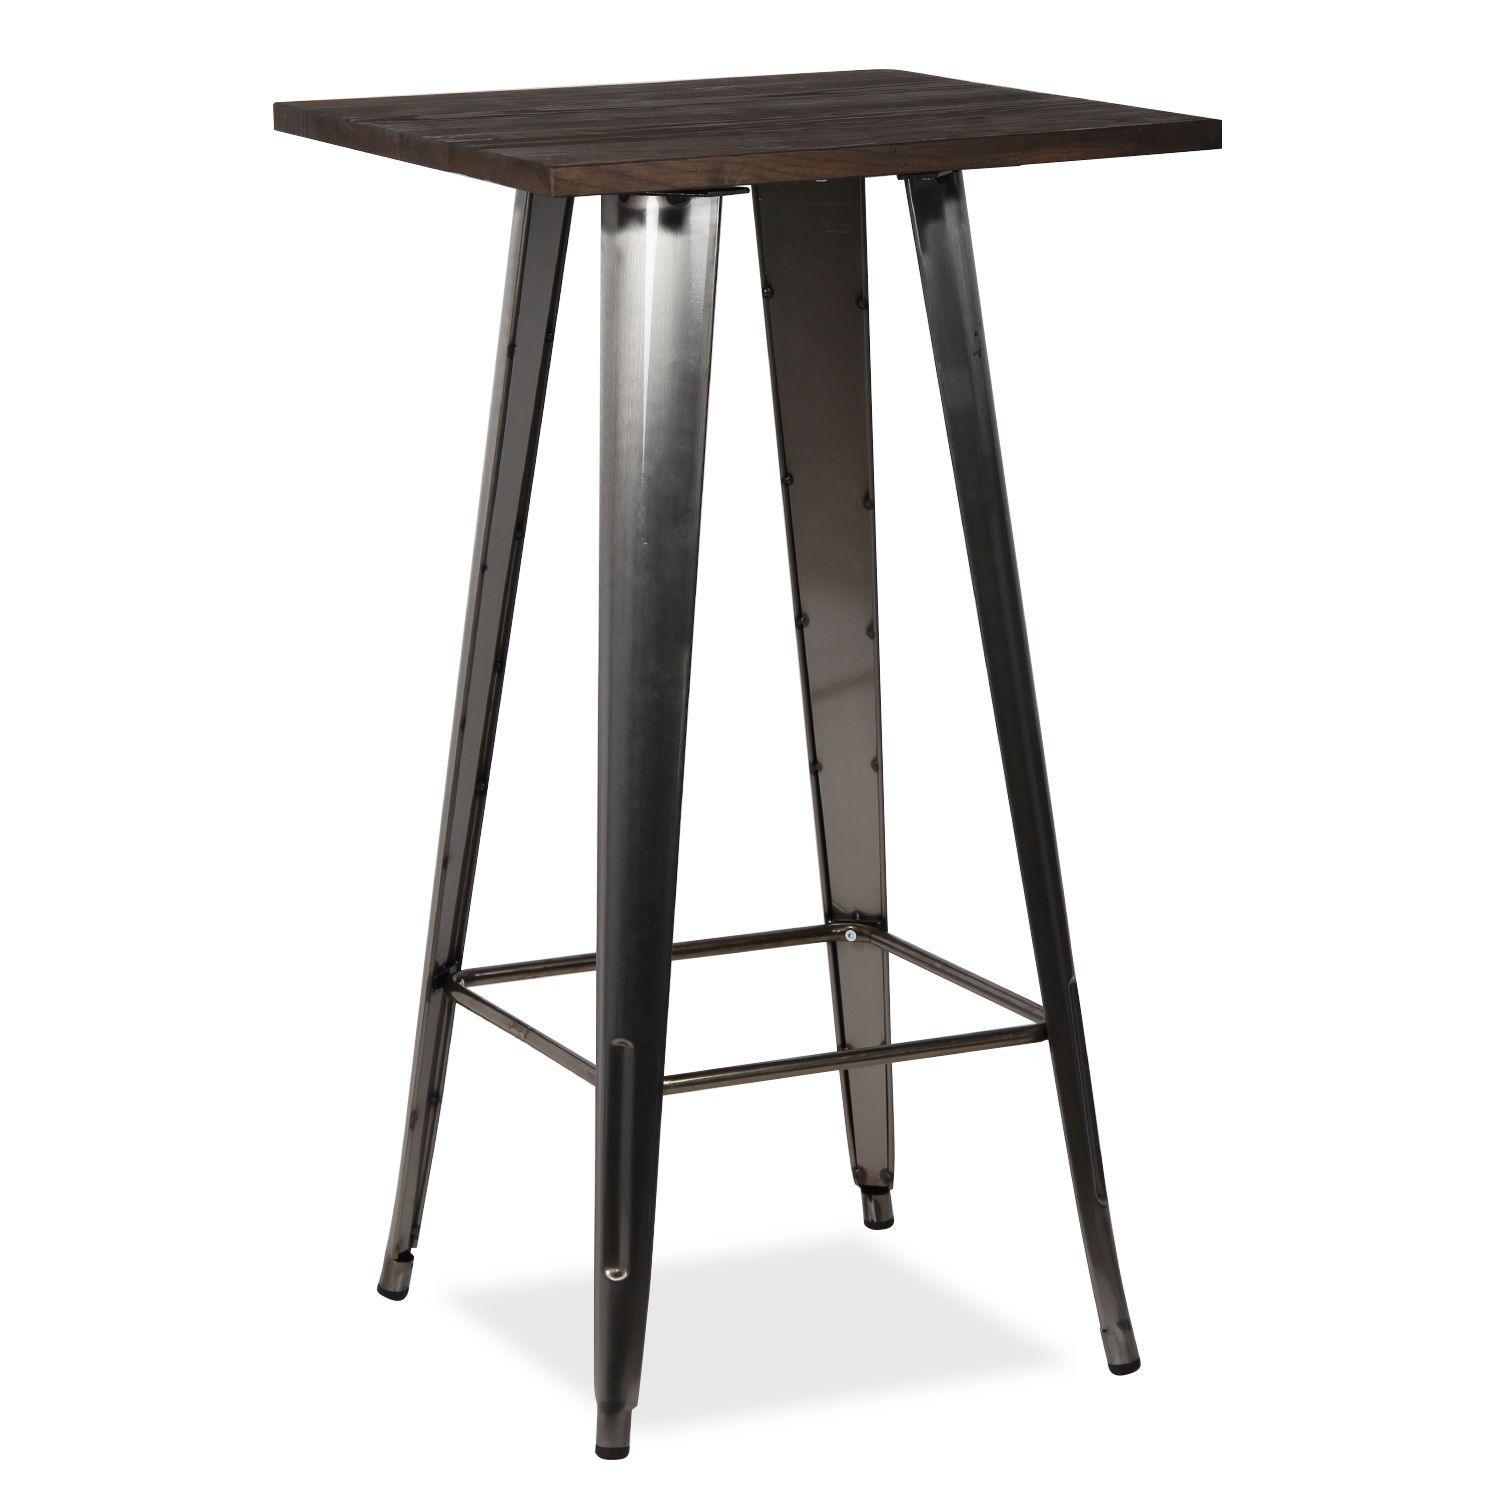 Bar Table Haute Table Haute Metal Ural 60x60 Sobre Madera Furniture High Bar